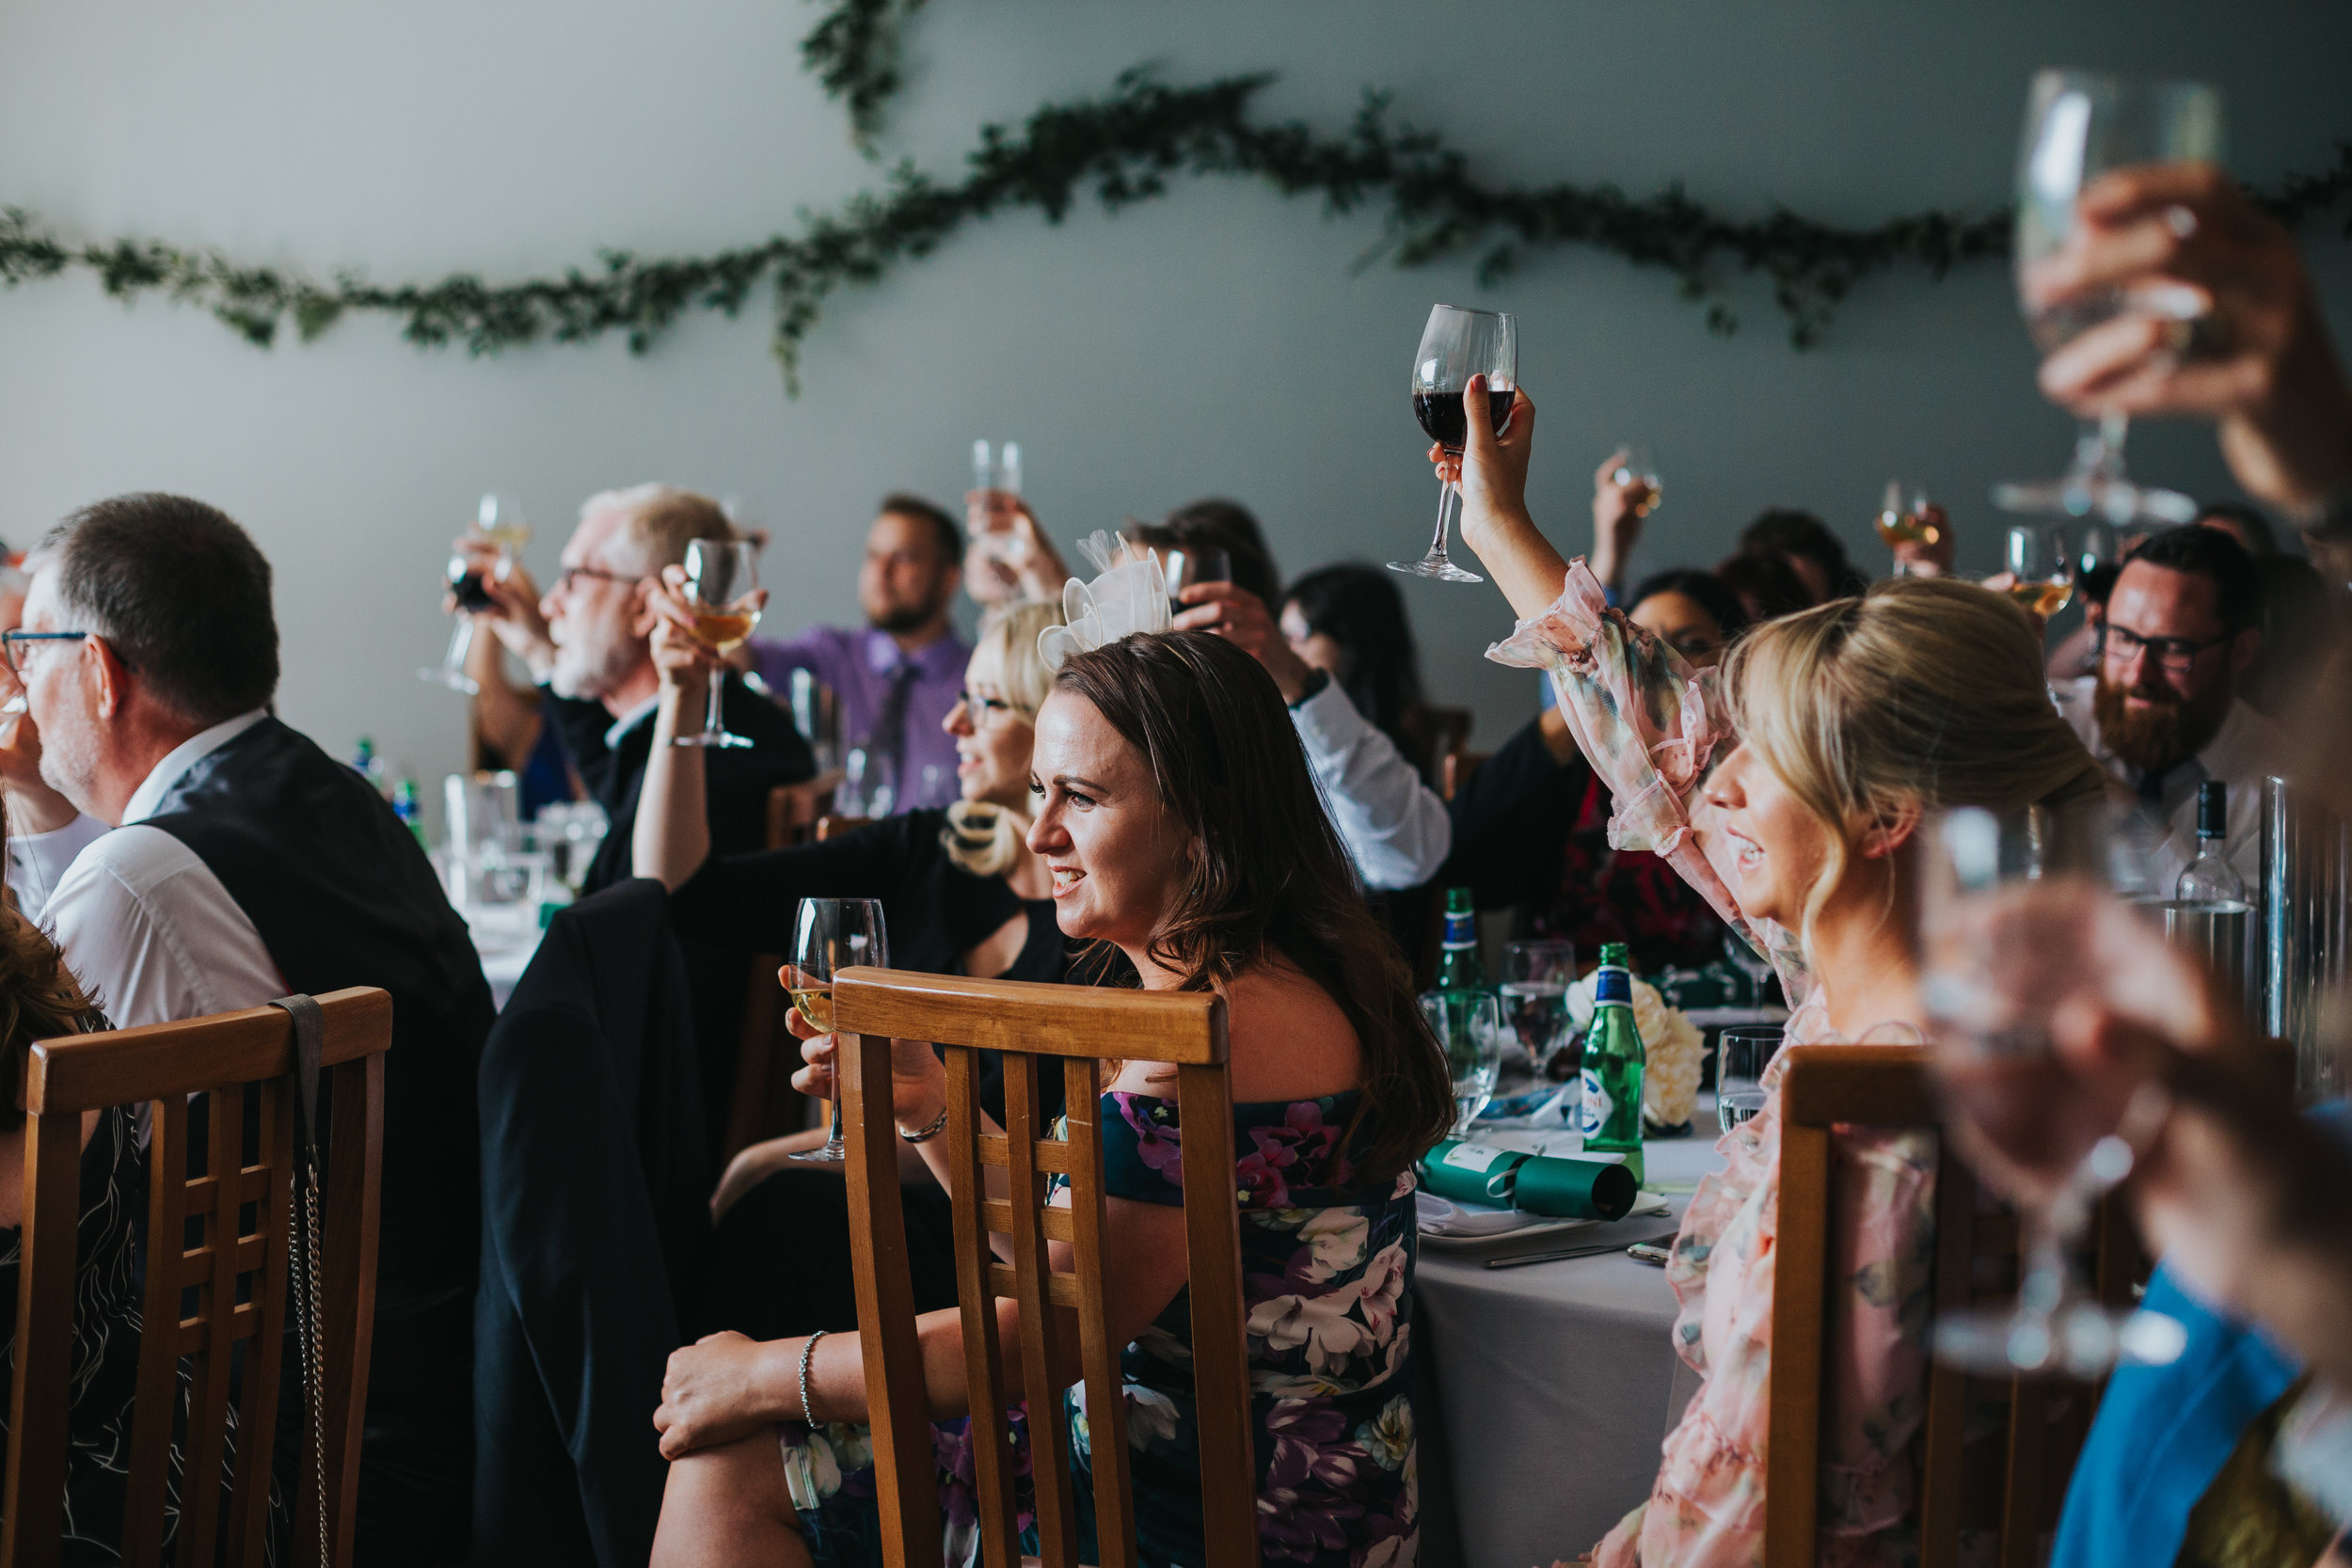 Guests raise their glasses.